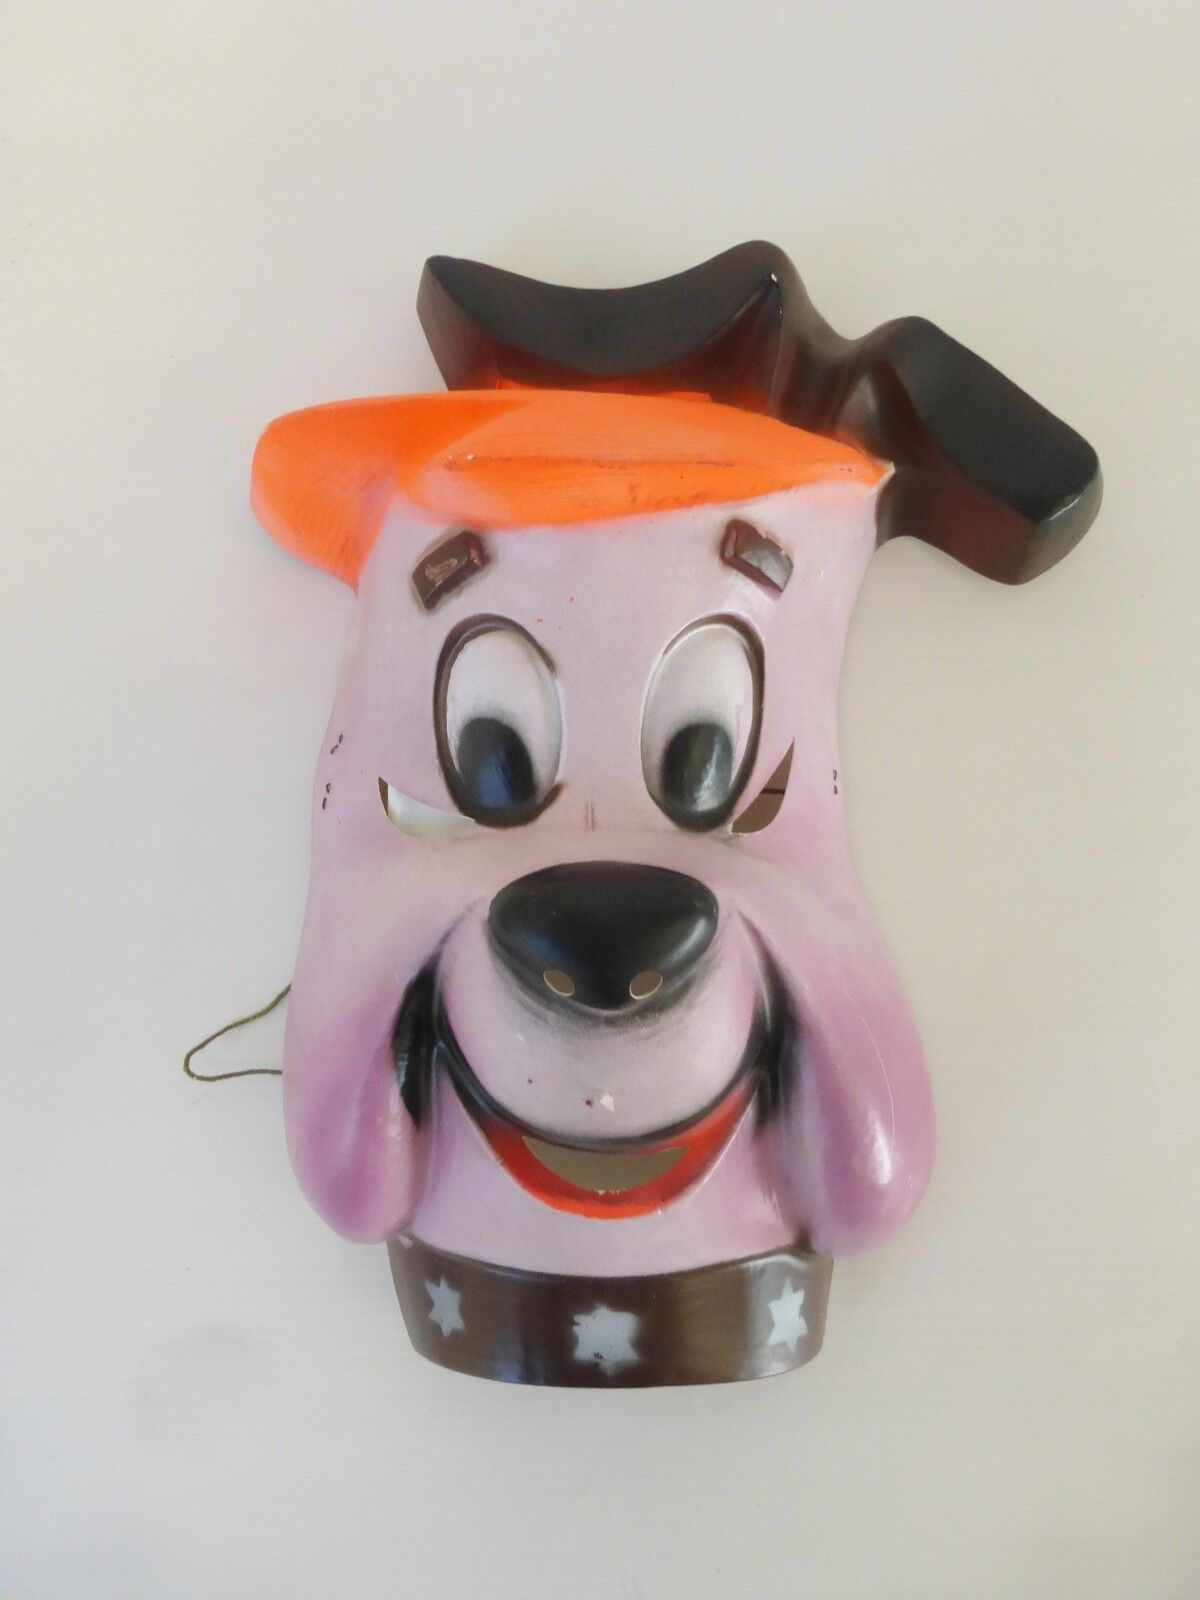 RUFF AND rougeDY HANNA BARBERA 1976 MASQUE CESAR n°352.2 VINTAGE 70's MASK